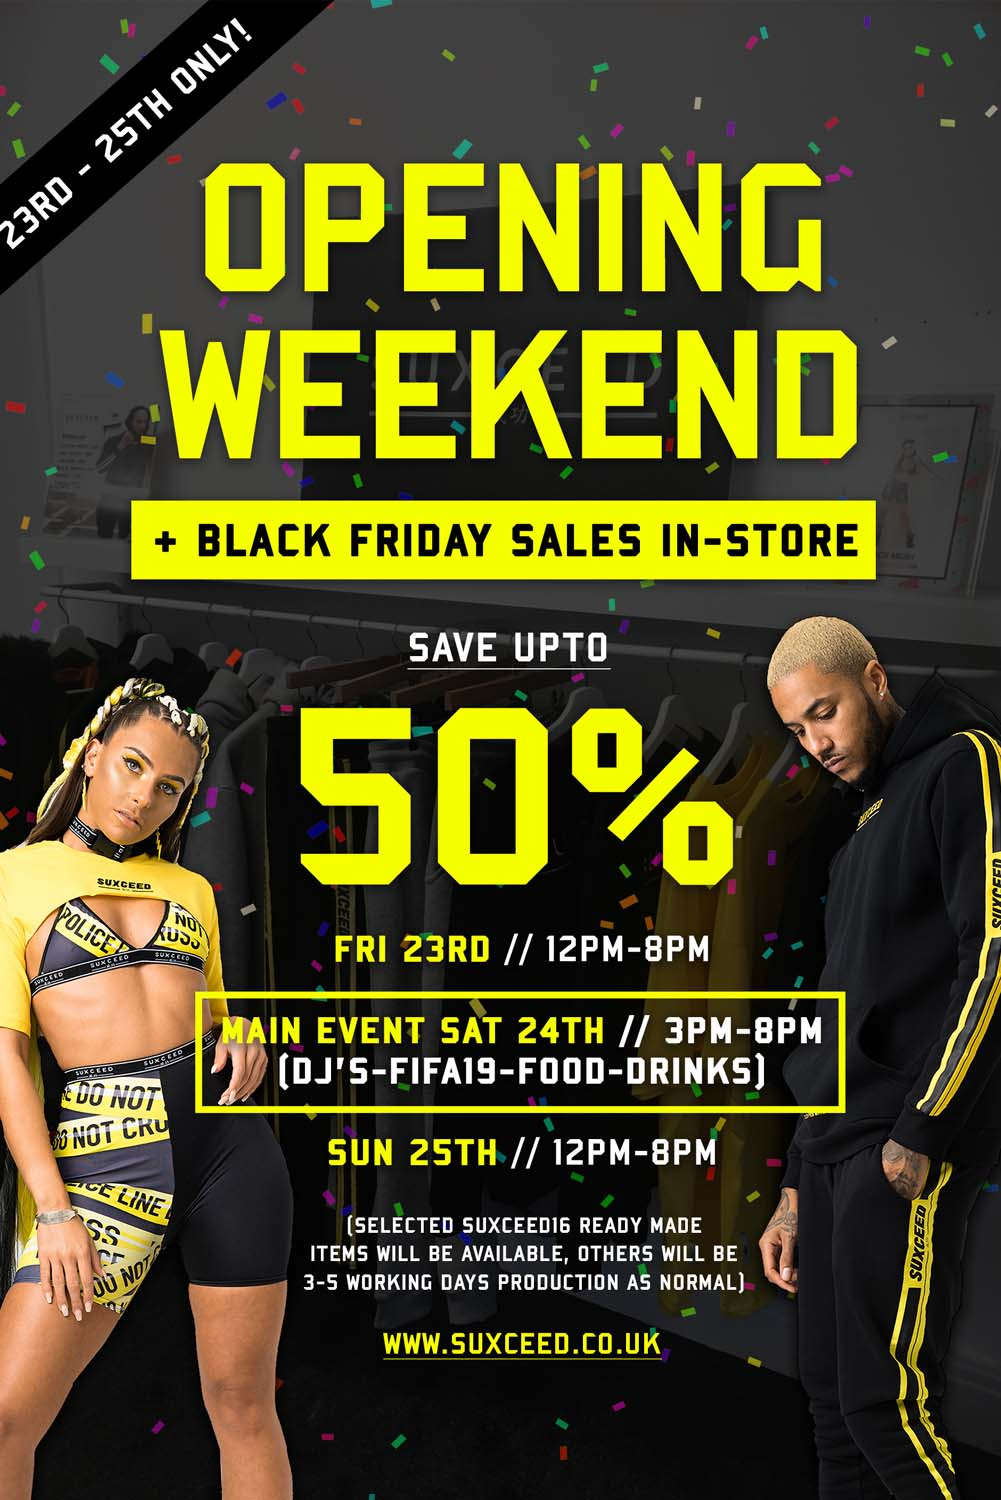 opening store weekend black friday